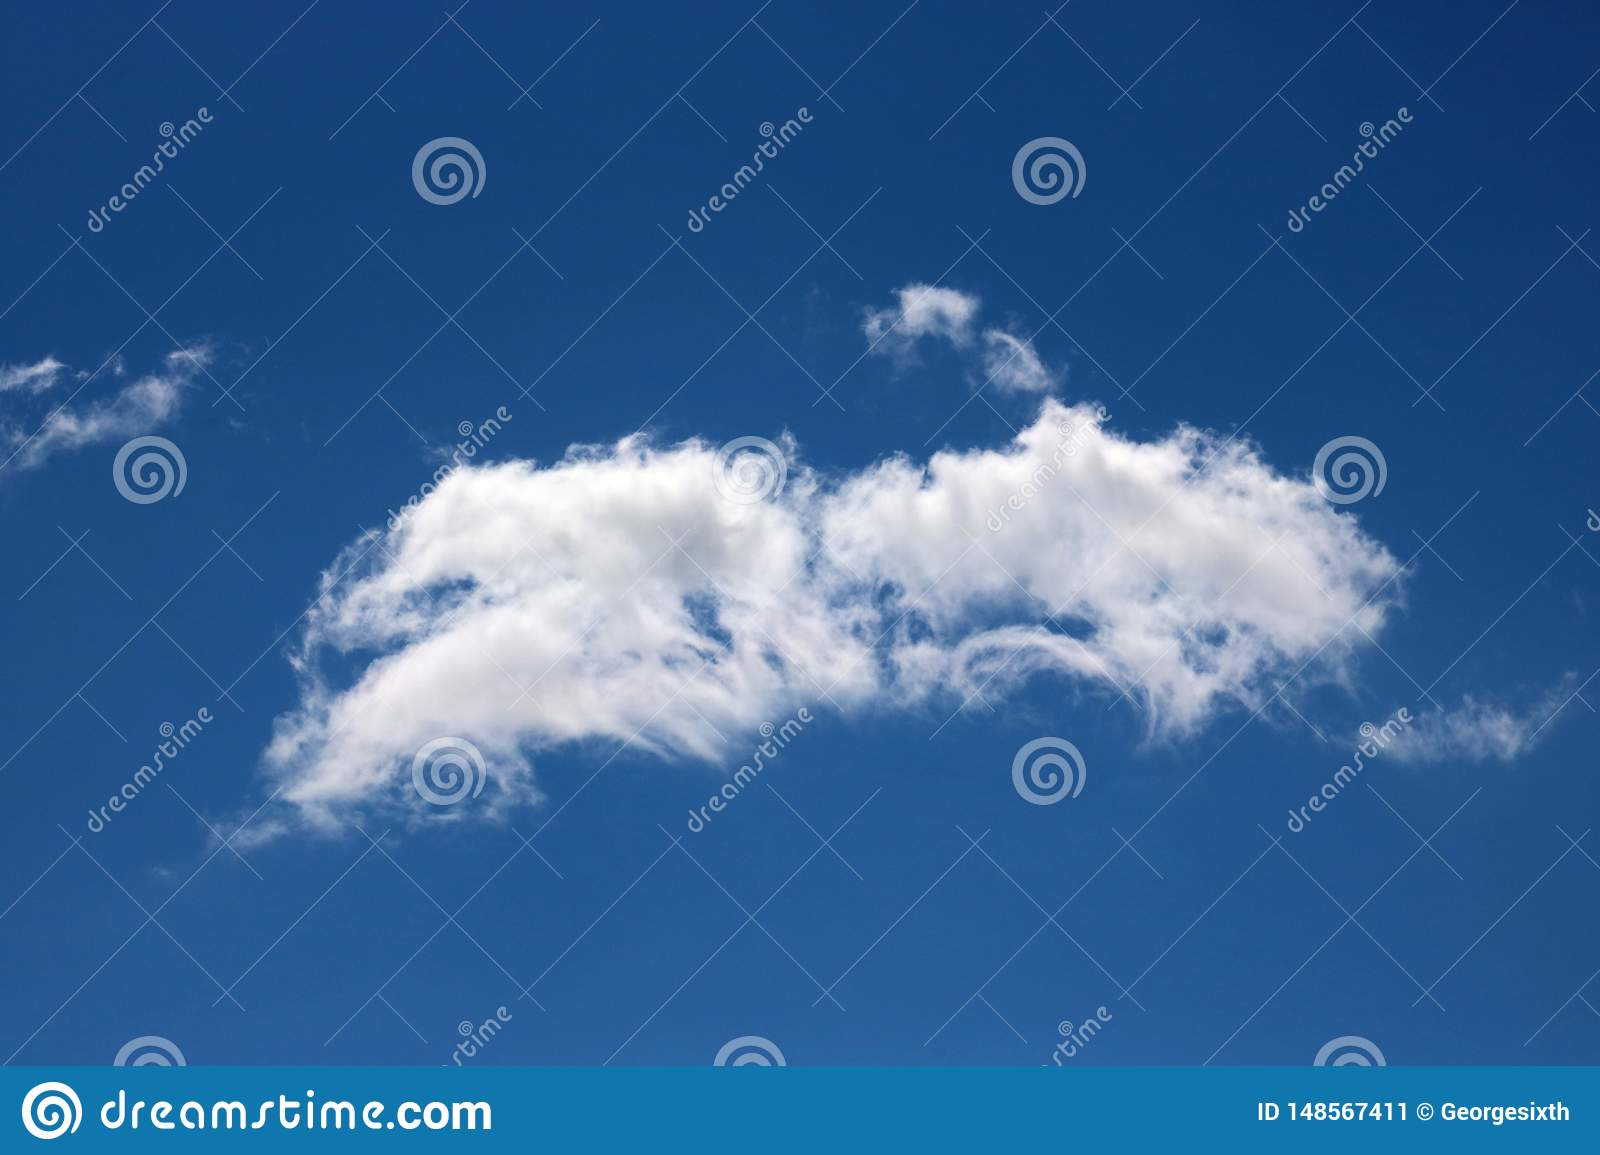 Wispy white cloud against blue sky on a sunny day